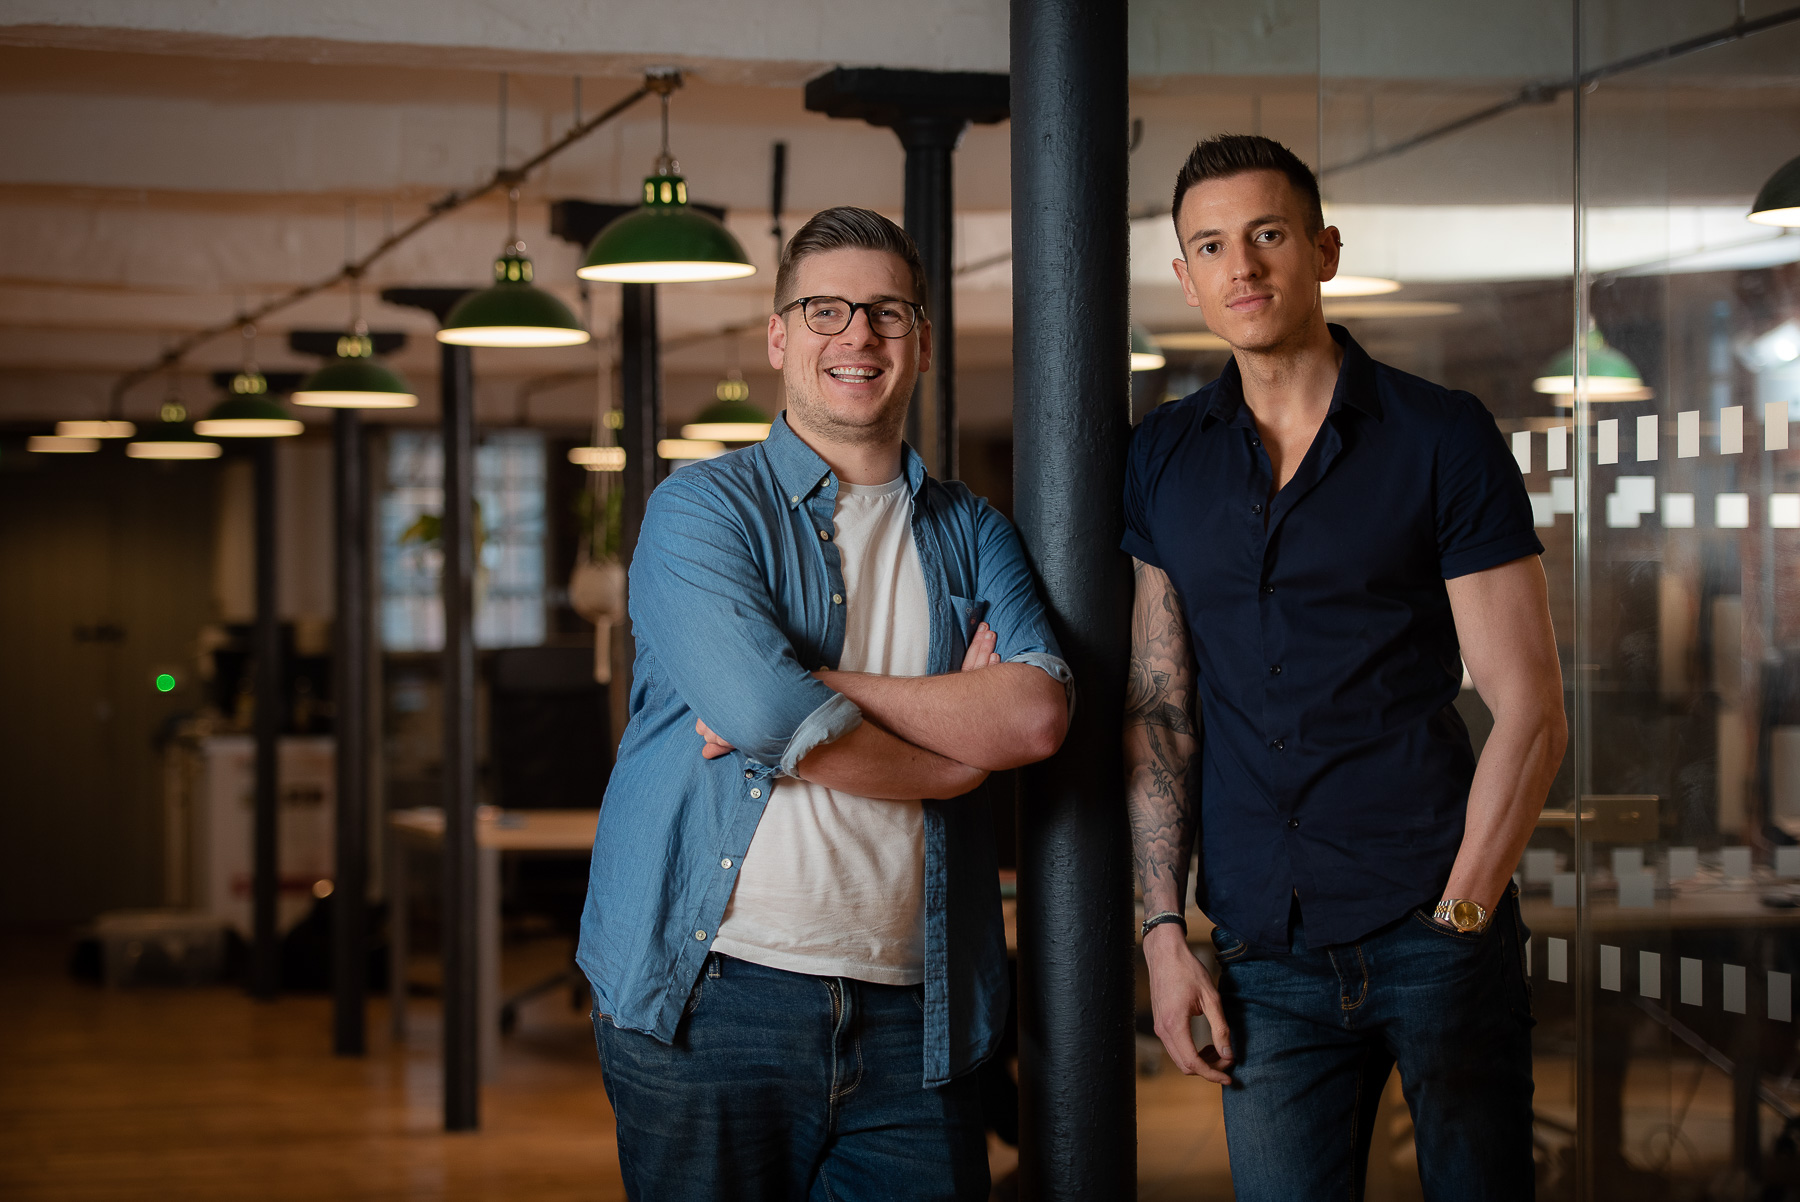 Directors of company lean on post at their trendy office